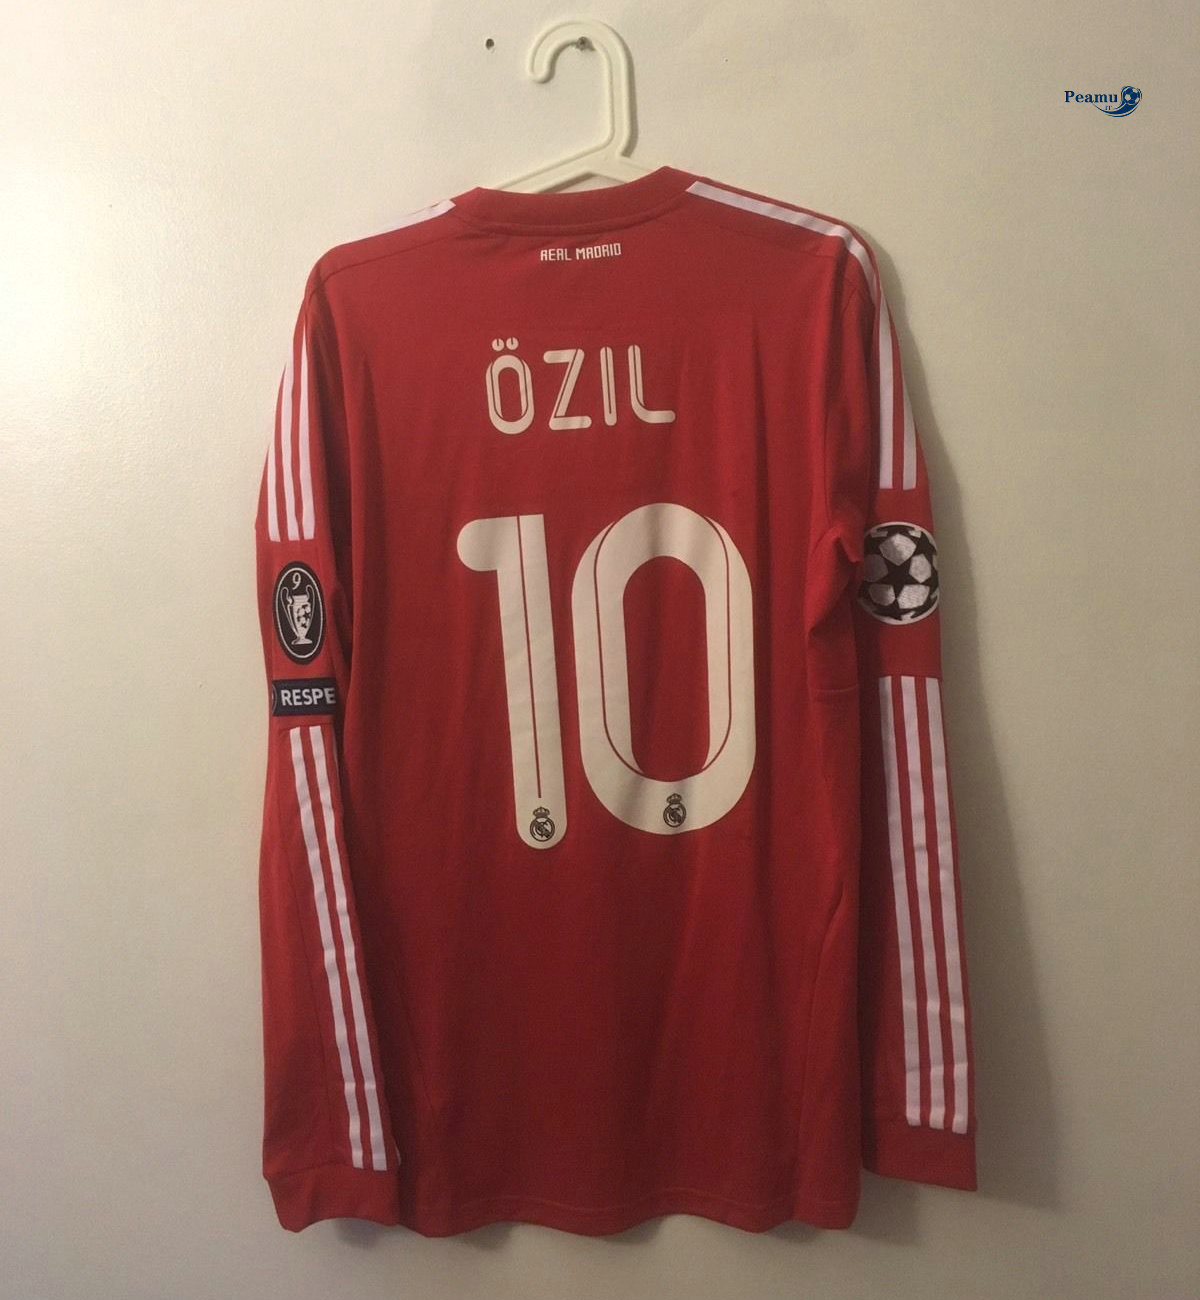 Classico Maglie Real Madrid Manche Longue Third Rouge (10 Ozil) 2011-12